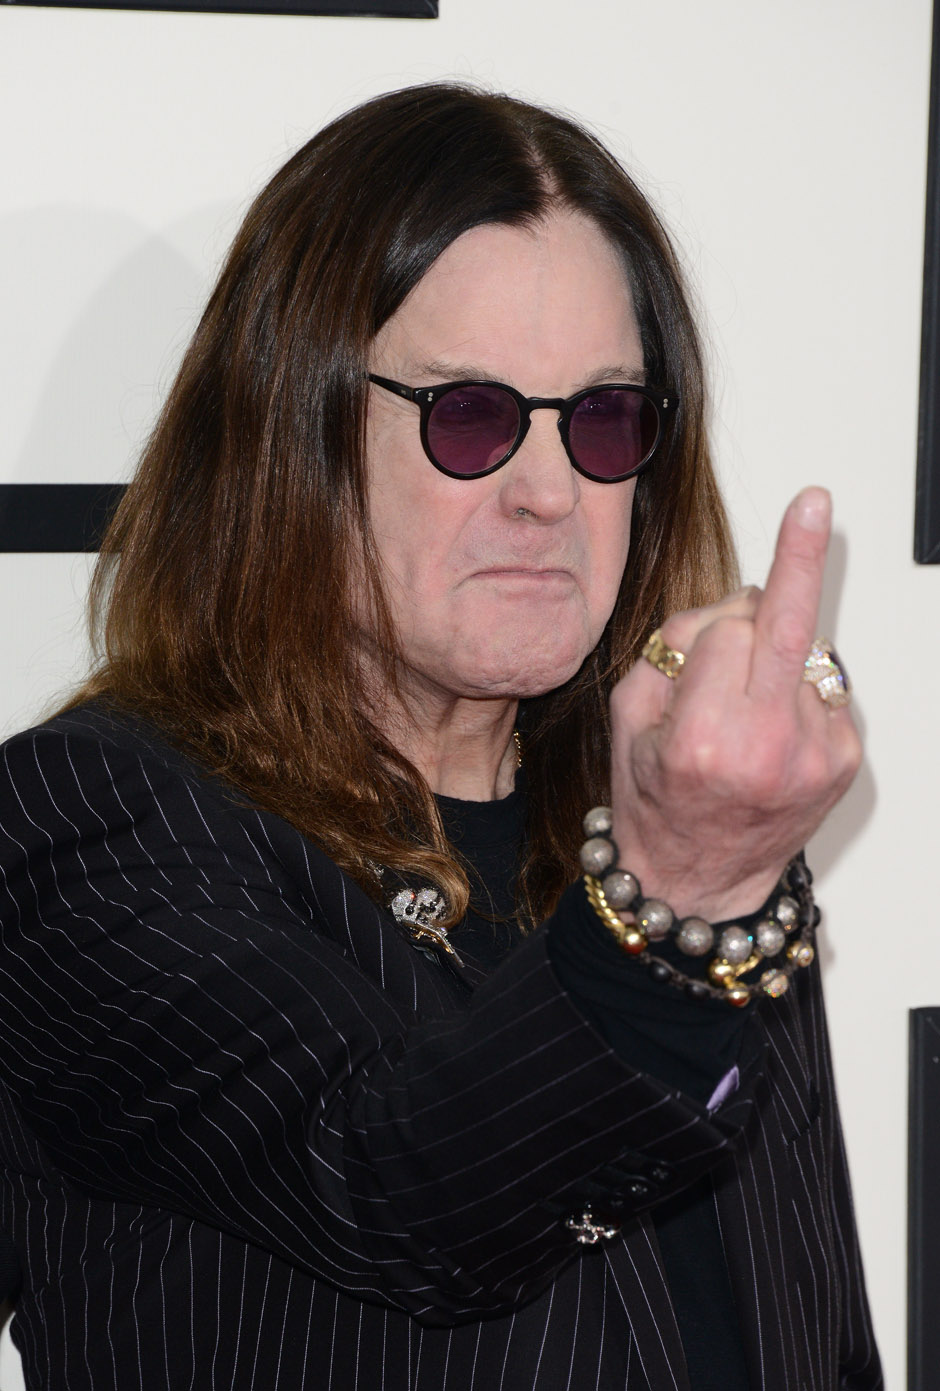 Ozzy Osbourne of Black Sabbath attends the 56th GRAMMY Awards at Staples Center on January 26, 2014 in Los Angeles, Californi